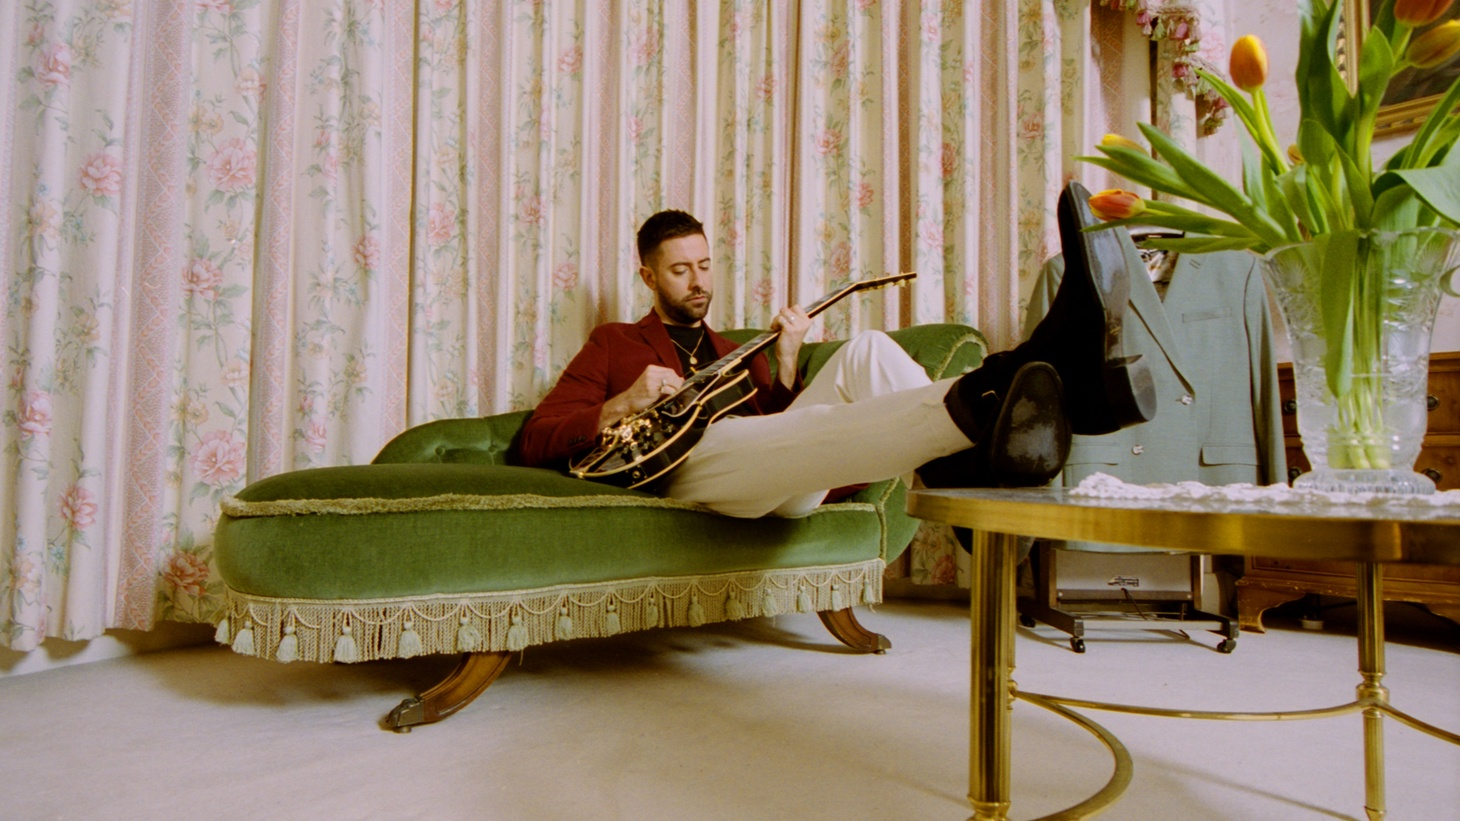 """Bruno Major contemplates soulmates on """"The Most Beautiful Thing,"""" co-written with luminary producer FINNEAS. Interlocking a resonant melody to thoughtful lyrics — we are invited to ponder finding 'the one' together."""